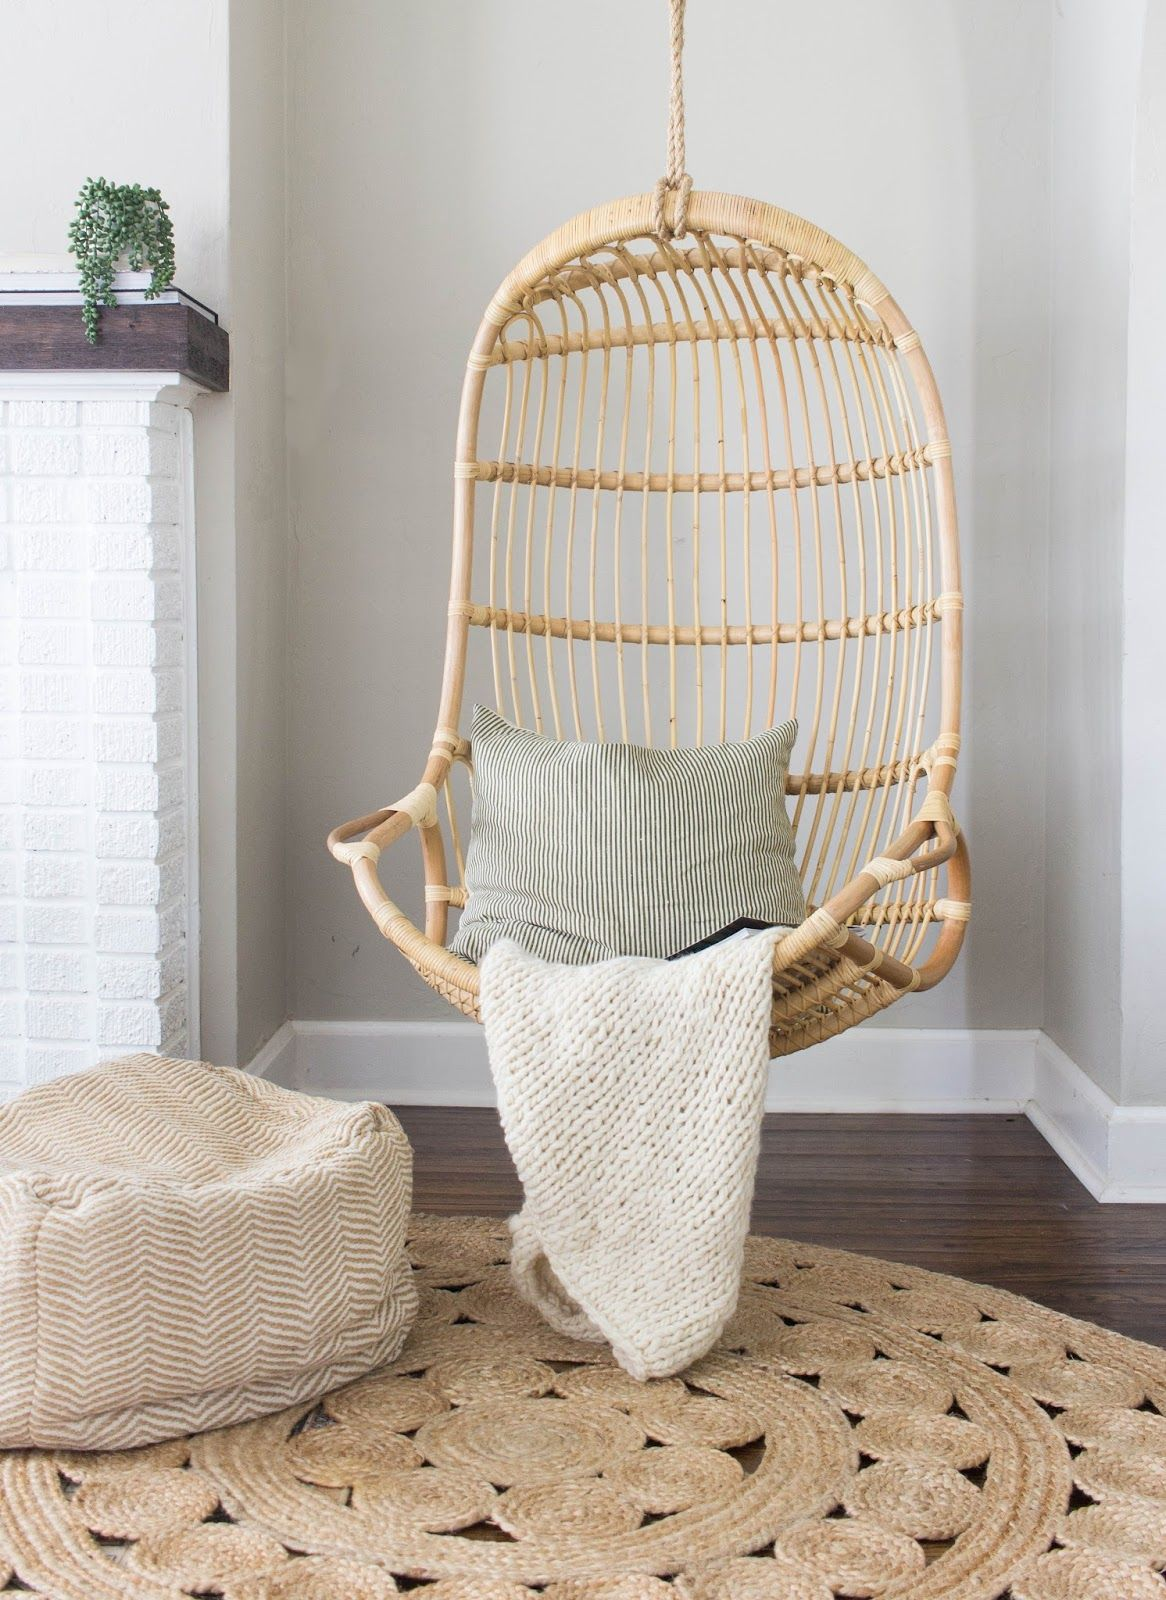 Always Rooney Hanging Chair Office Chair Cushion Jute Round Rug